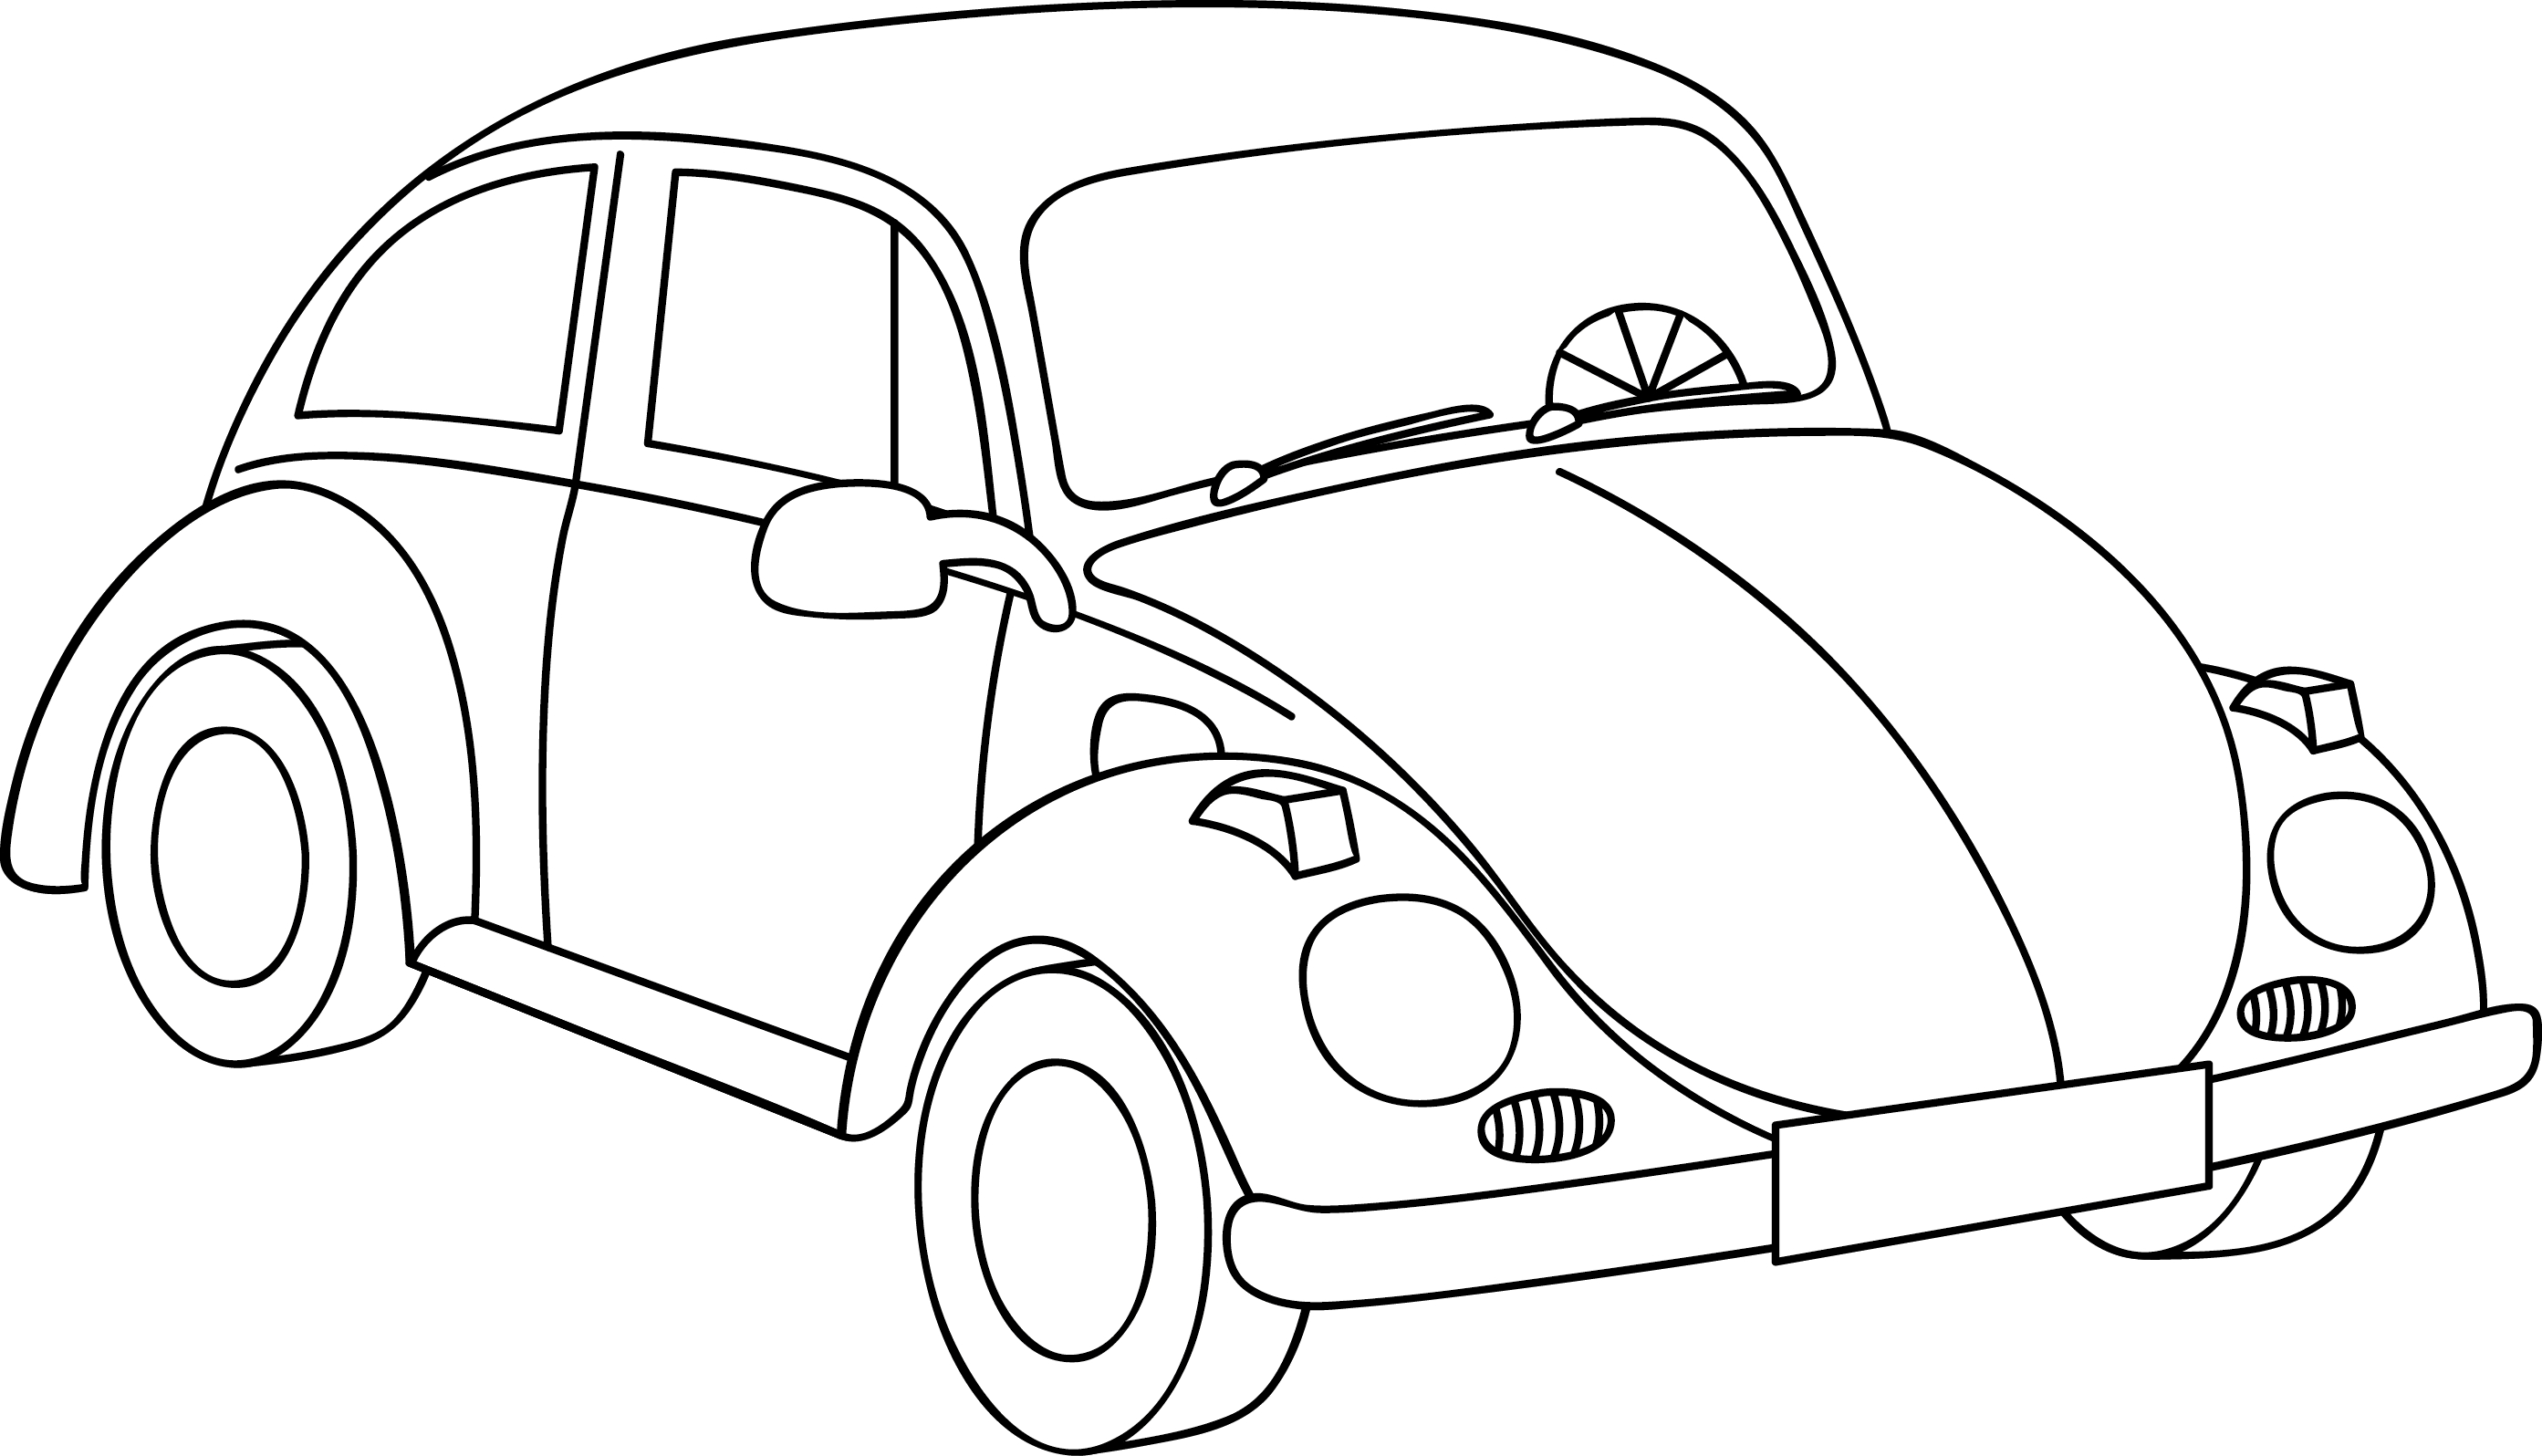 Vw Beetle Coloring Pages To Print